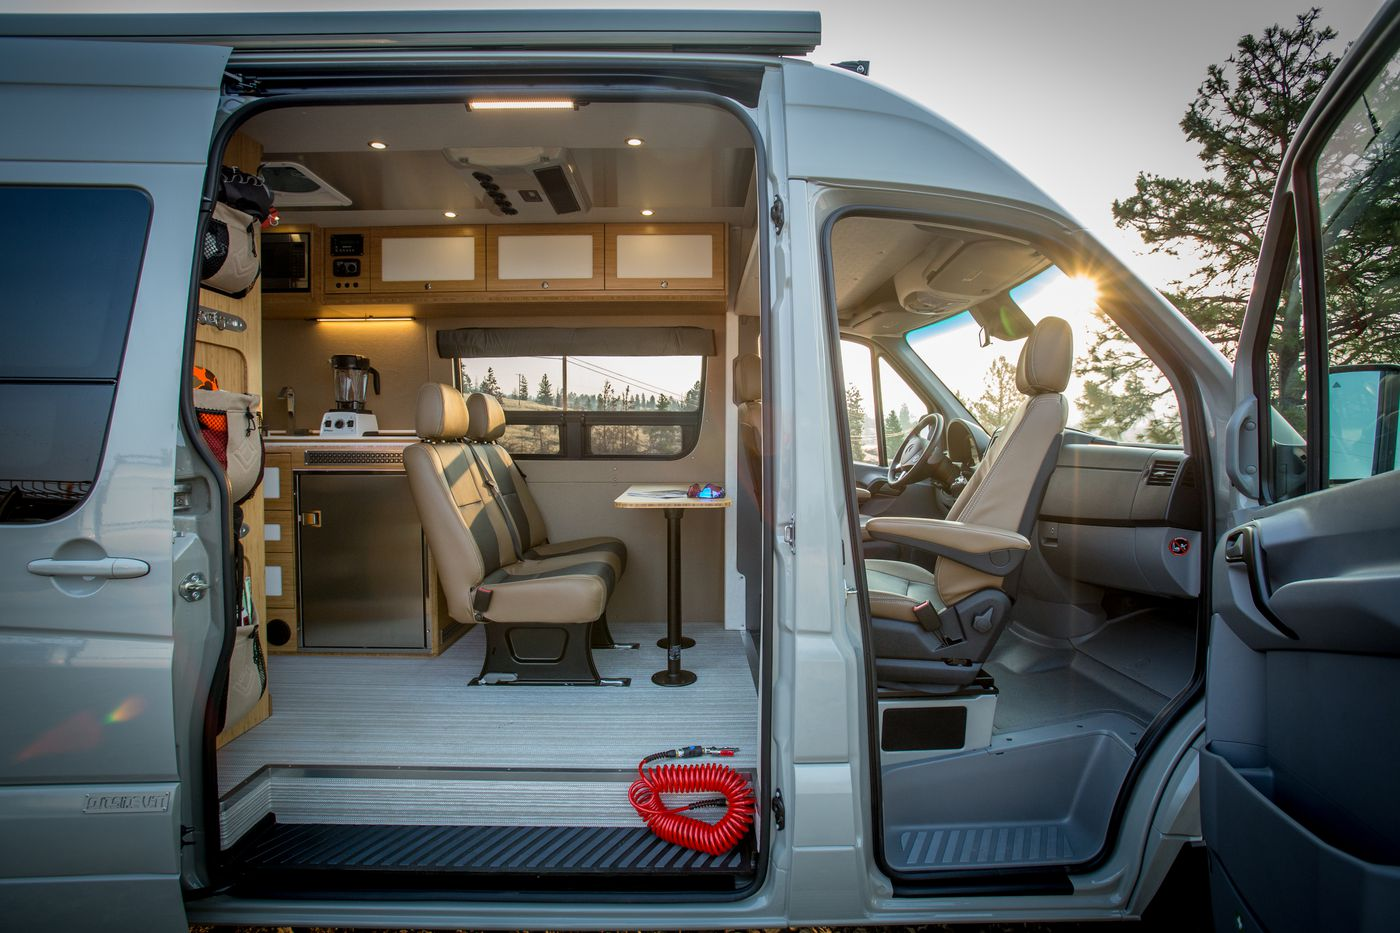 Luxury camper van can go off grid for days - Curbed